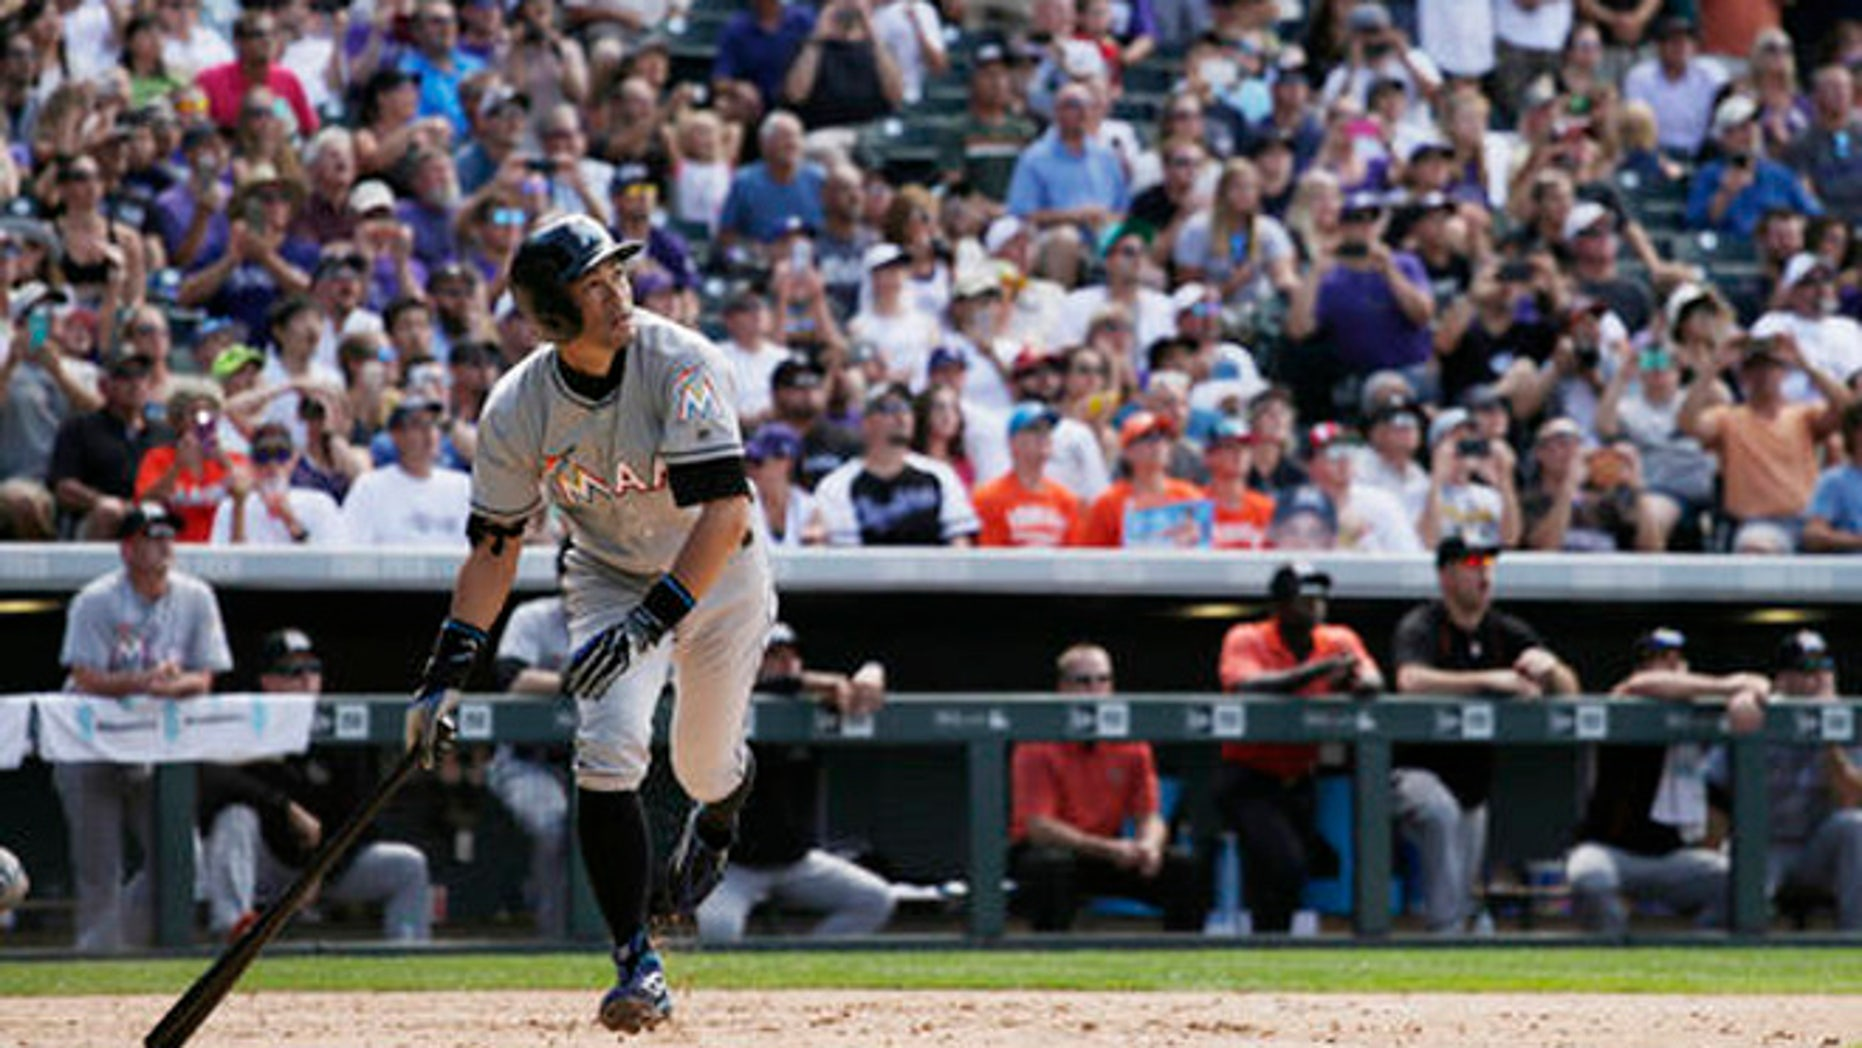 Miami Marlins' Ichiro Suzuki (51) hits a triple for the 3,000th hit of his Major League Career in the seventh inning of a baseball game against the Colorado Rockies in Denver on Sunday, Aug. 7, 2016. (AP Photo/Joe Mahoney)